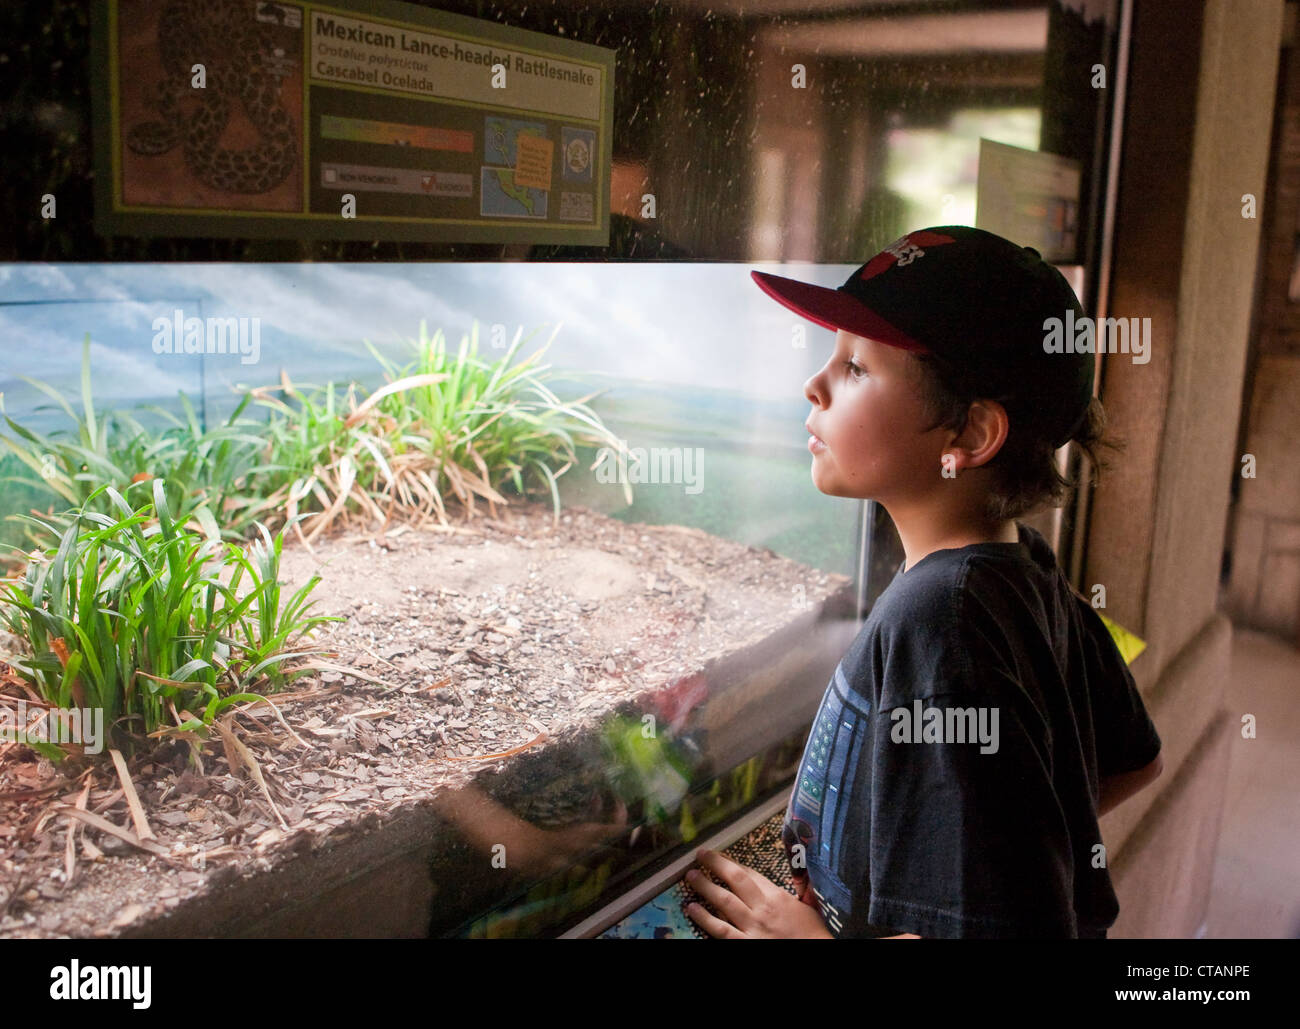 8 year old Mexican-American boy peaks into glass enclosure with rattlesnake at the San Antonio Texas Zoo. - Stock Image